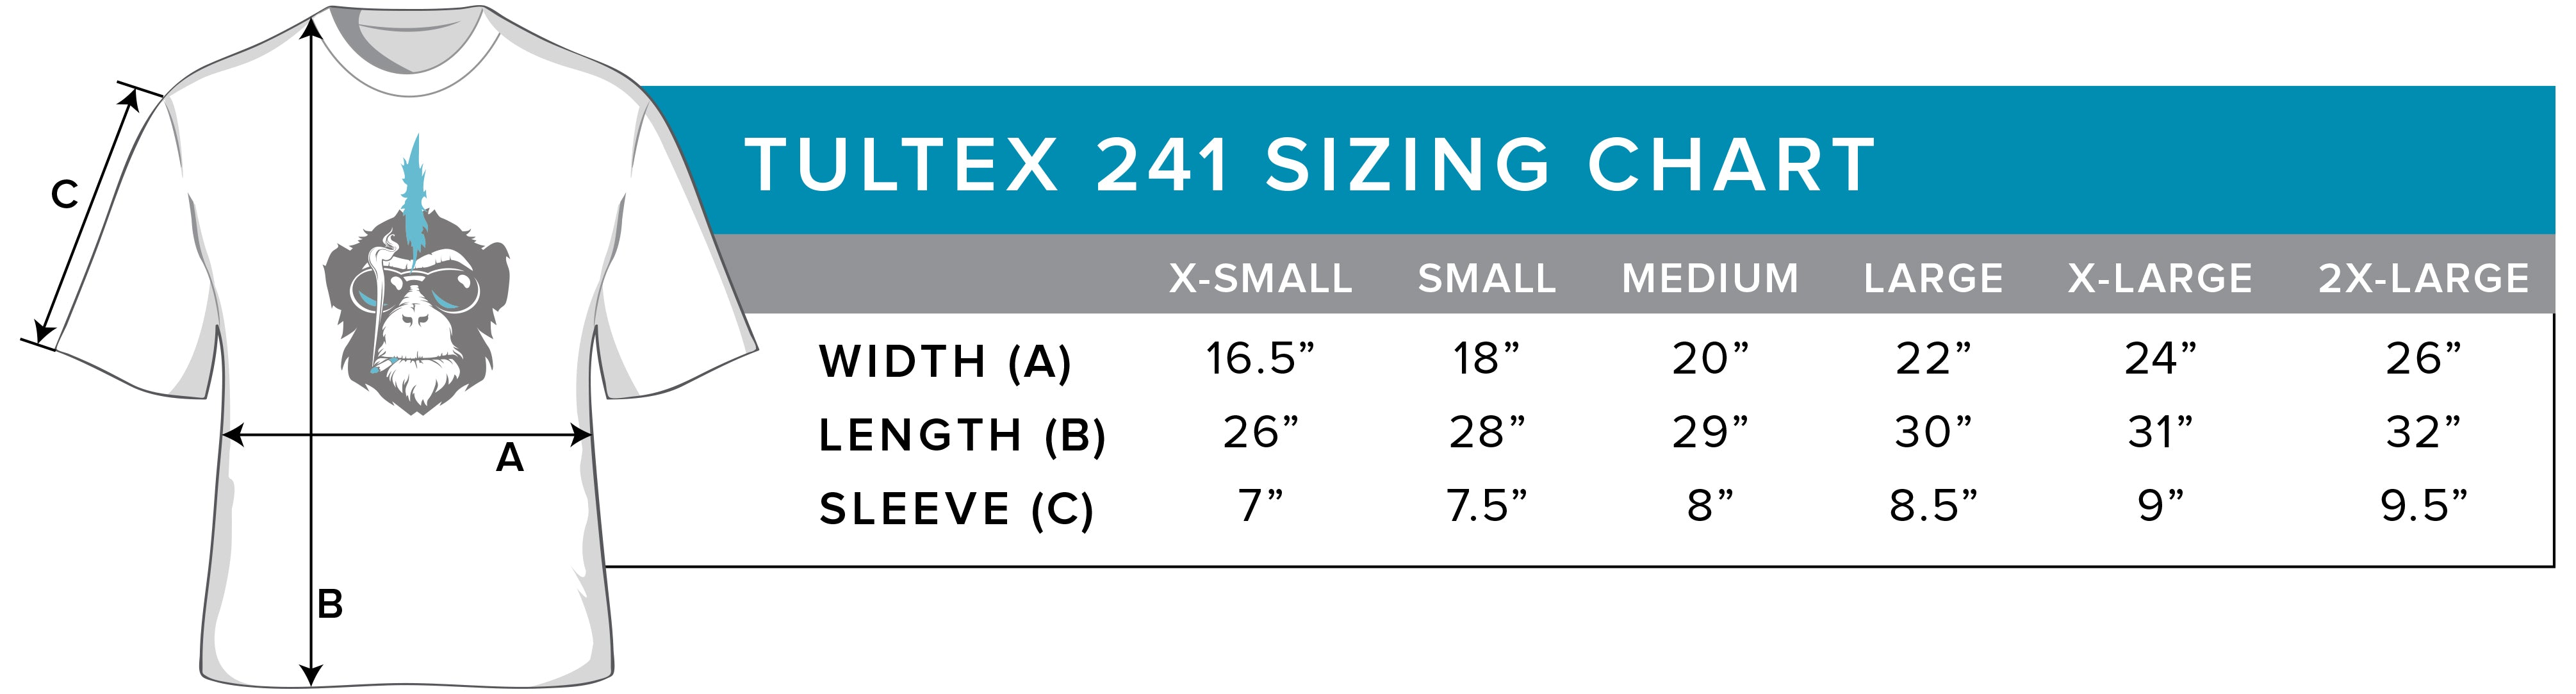 TULTEX 241 Sizing Chart by Rockin Monkey Designs of San Antonio